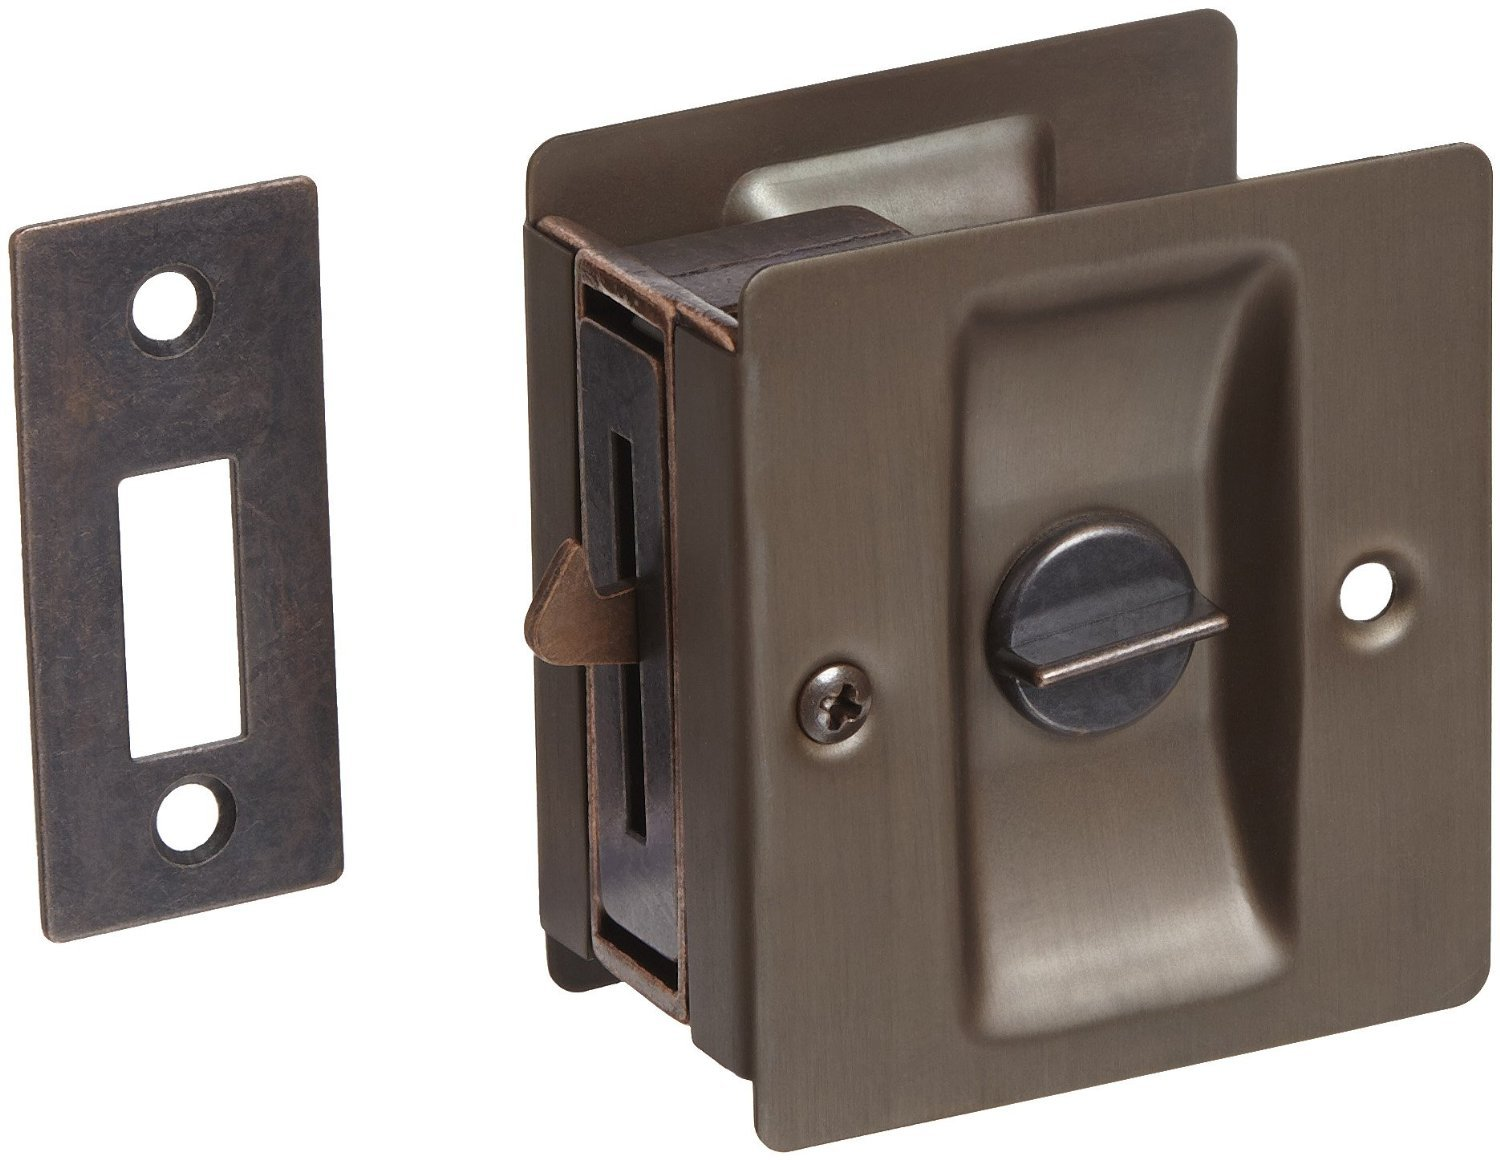 Rockwood 891.10B Brass Pocket Door Privacy Latch, 2-1/2'' Width x 2-3/4'' Height, Satin Oxidized Oil Rubbed Bronze Finish by Rockwood (Image #1)